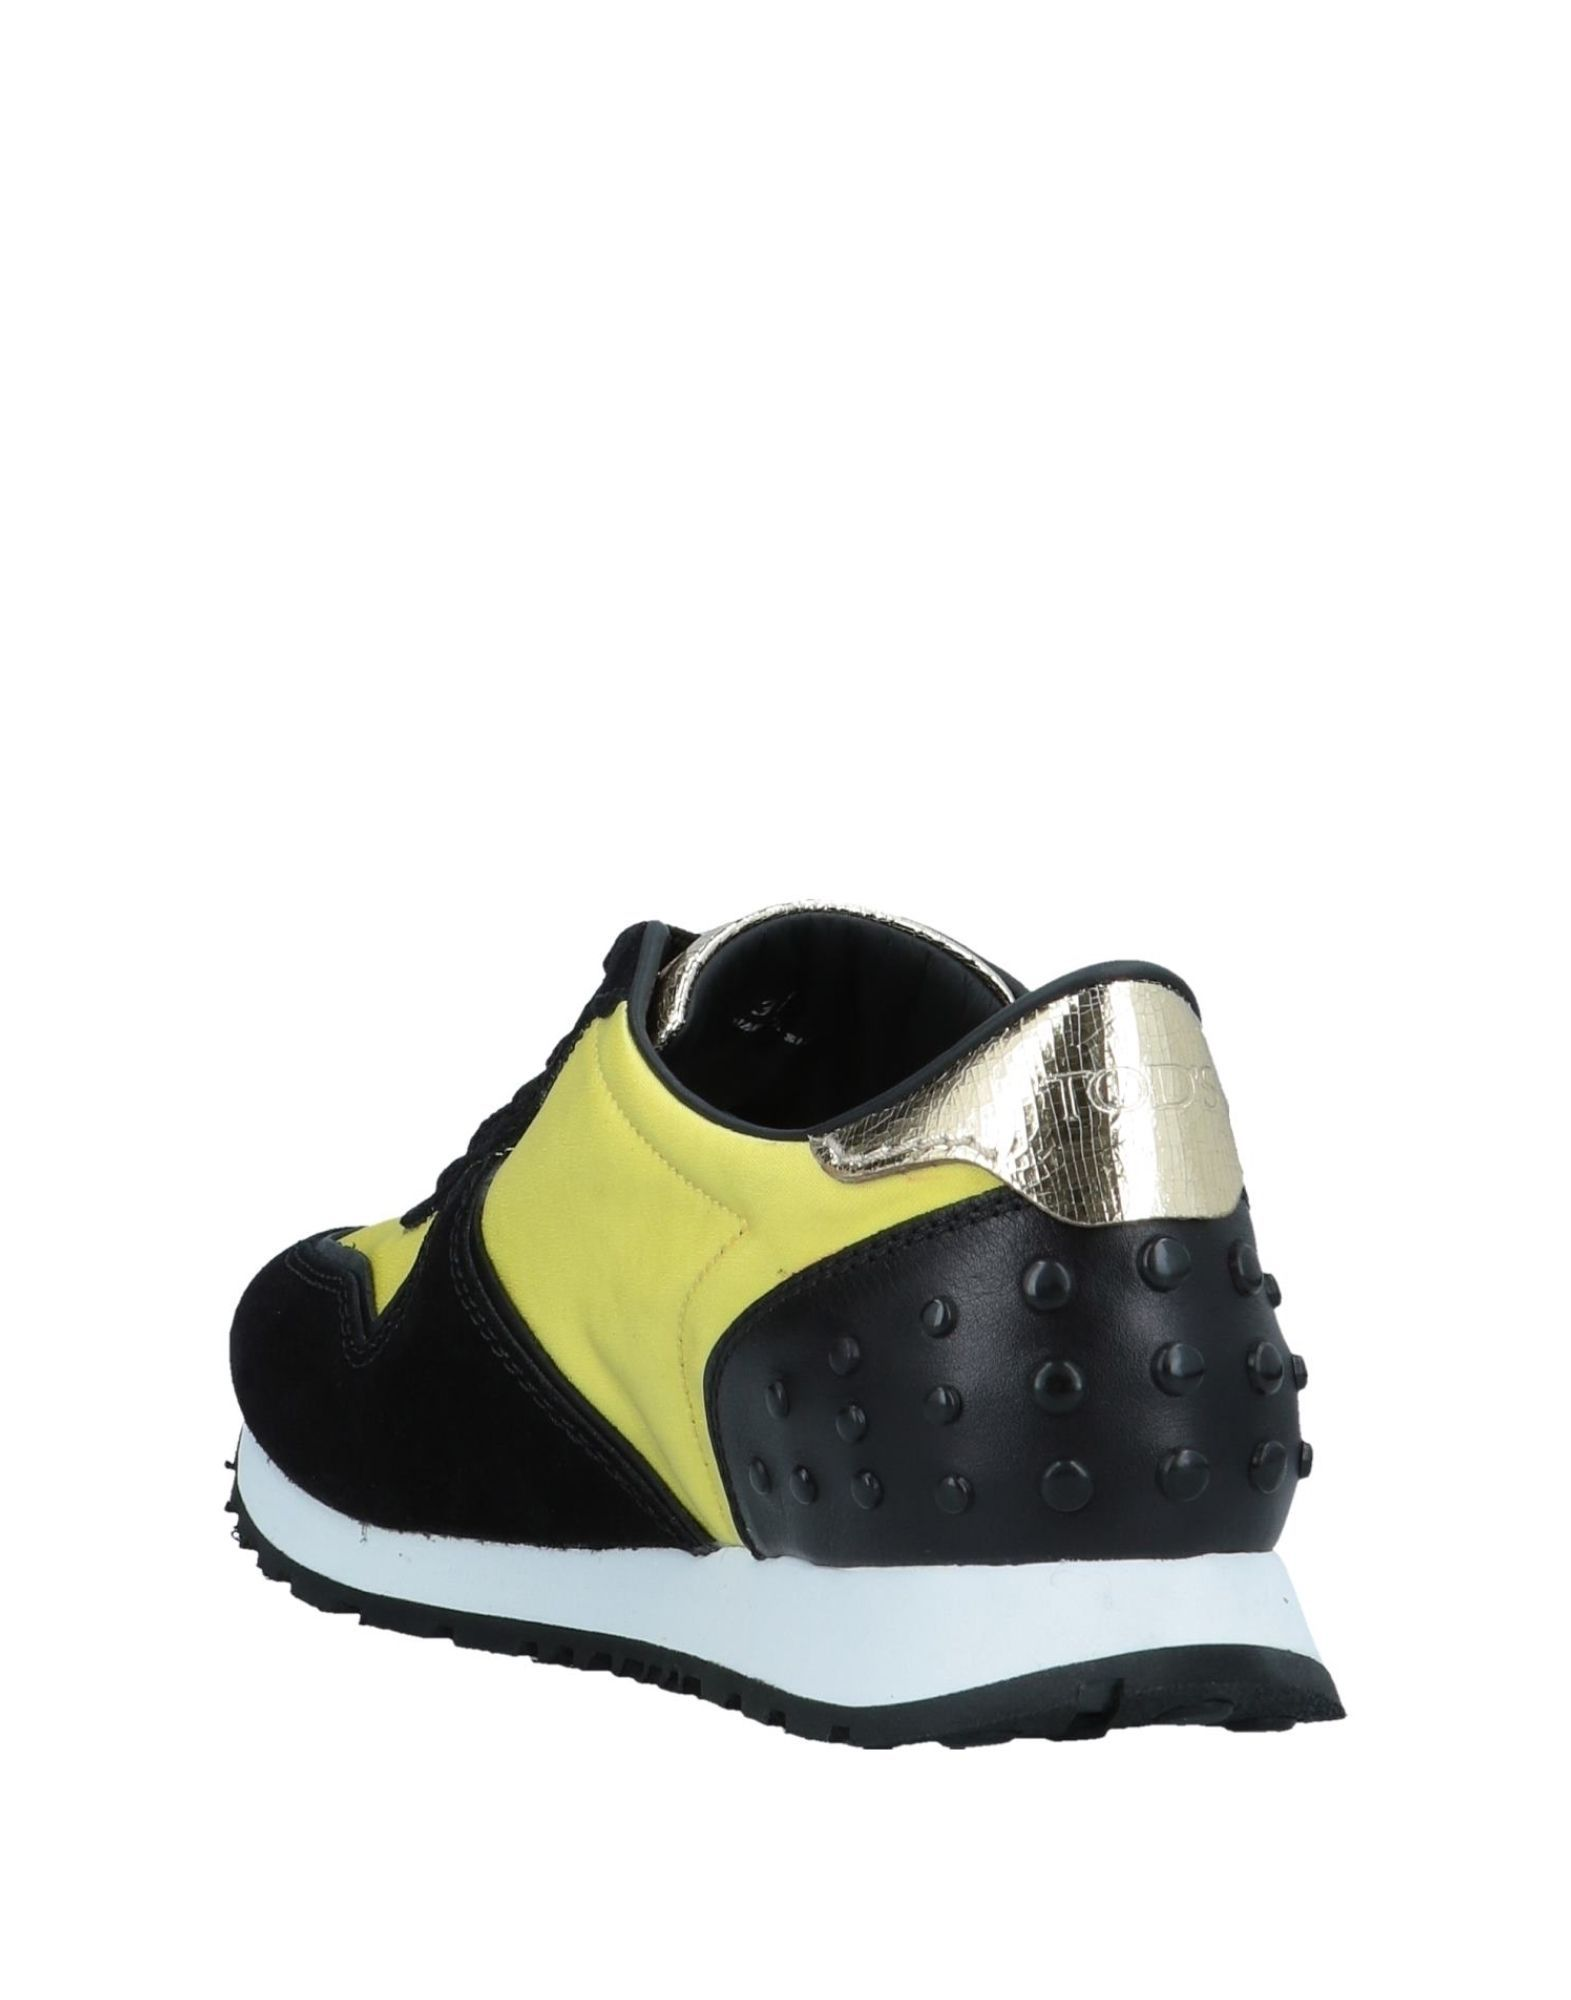 Tod's Yellow Leather Sneakers